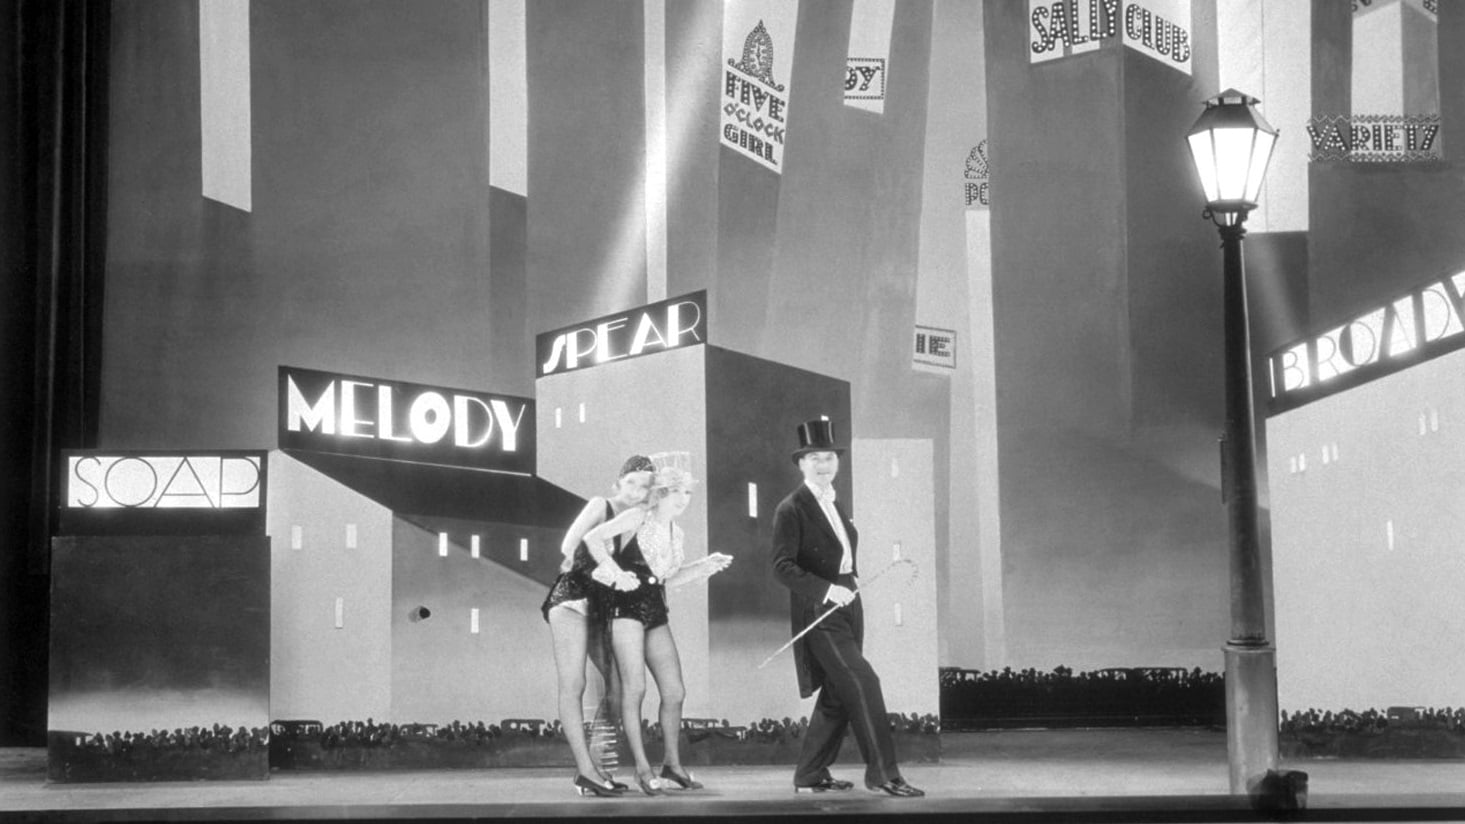 The Broadway Melody backdrop